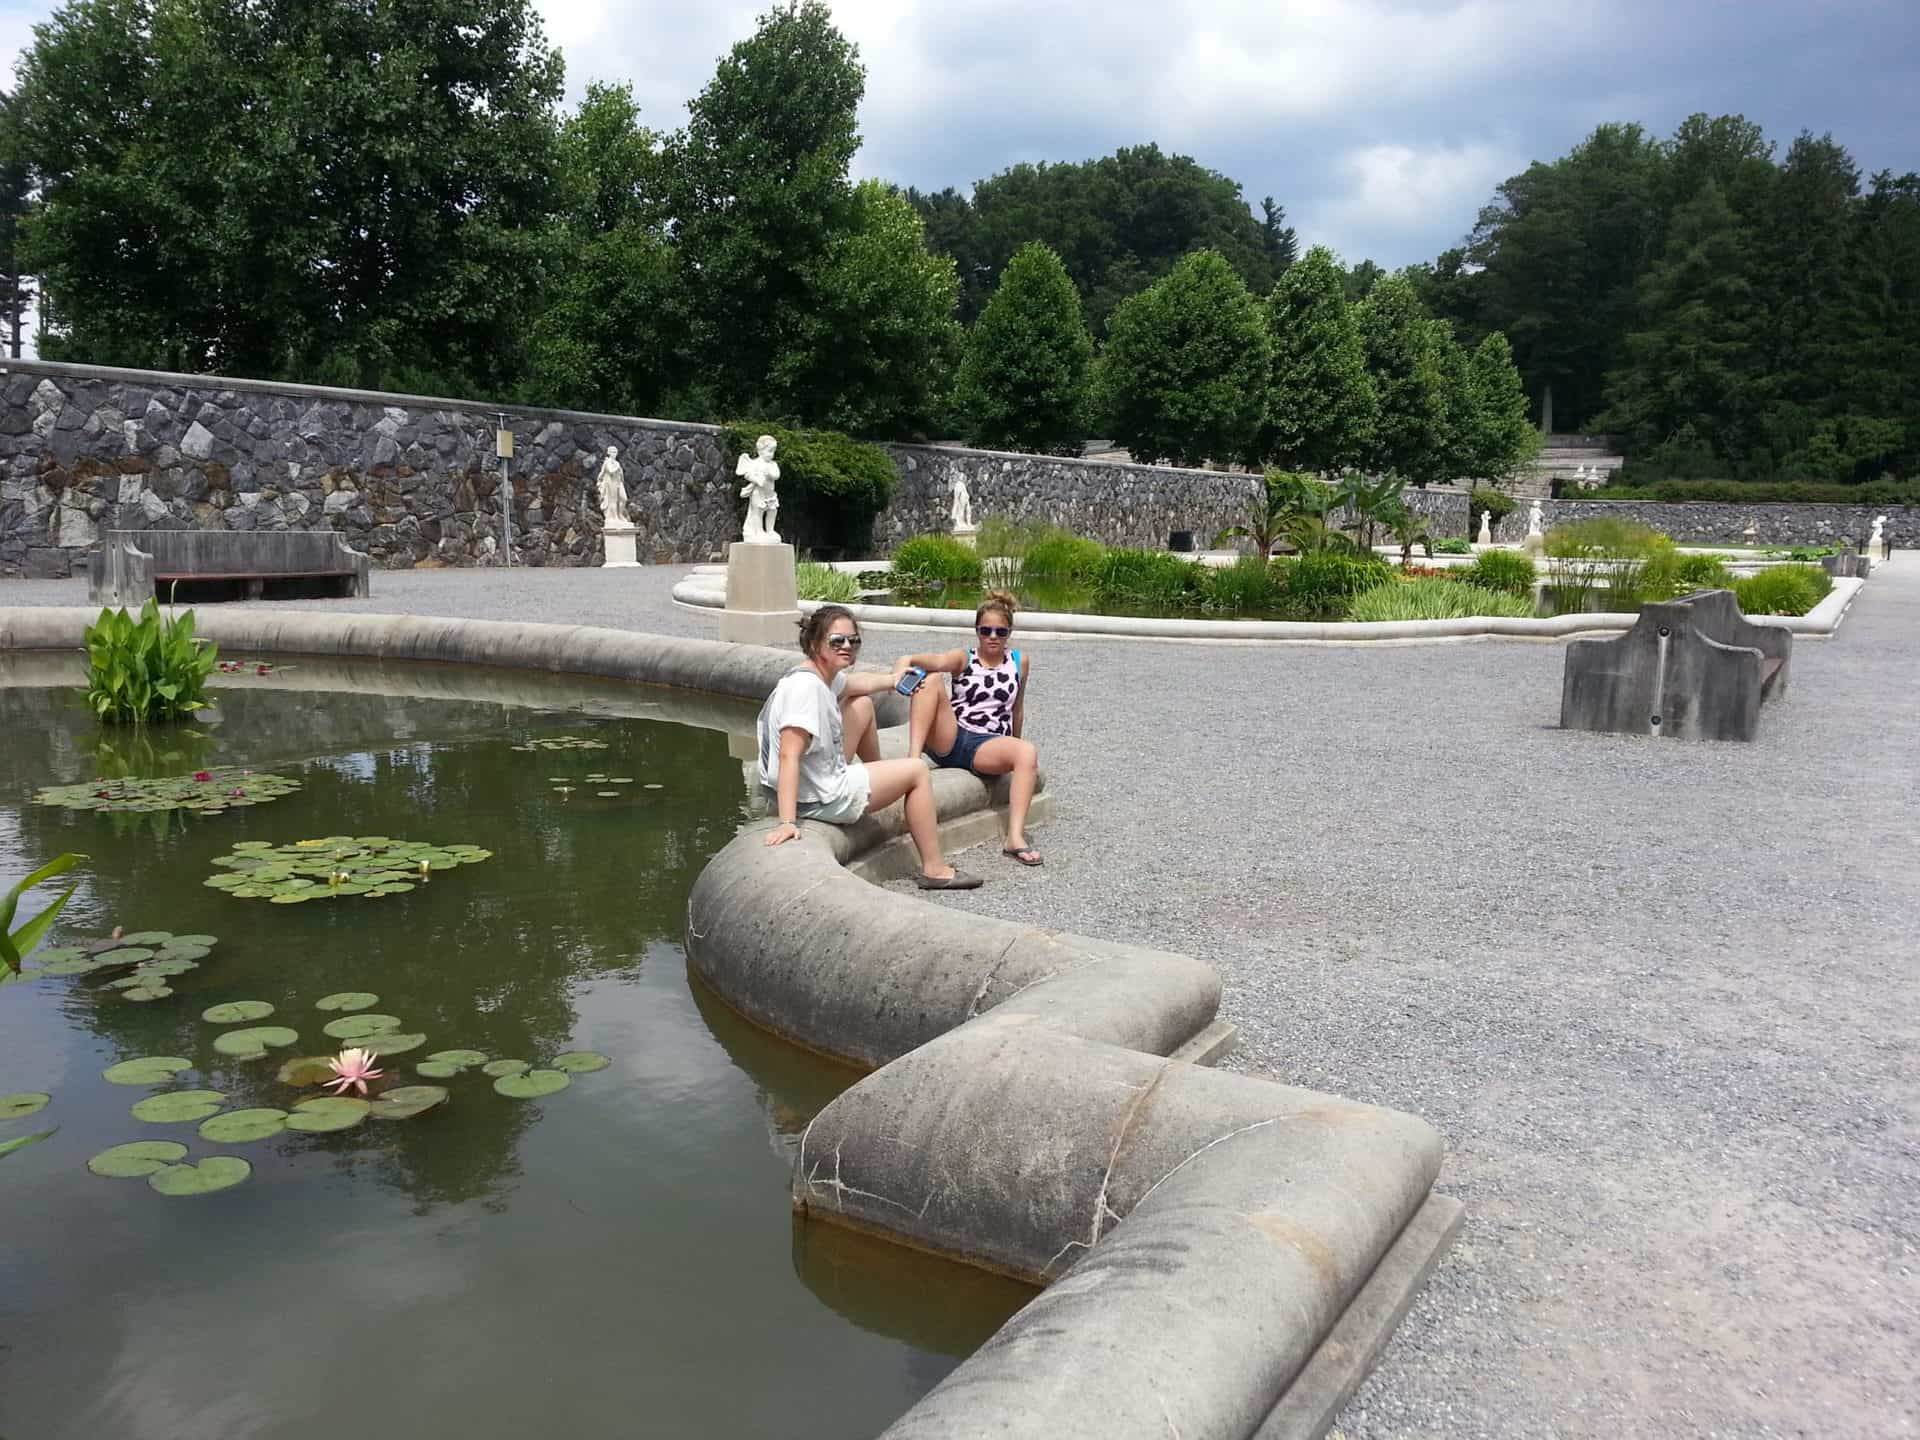 Fish ponds in the Biltmore's gardens